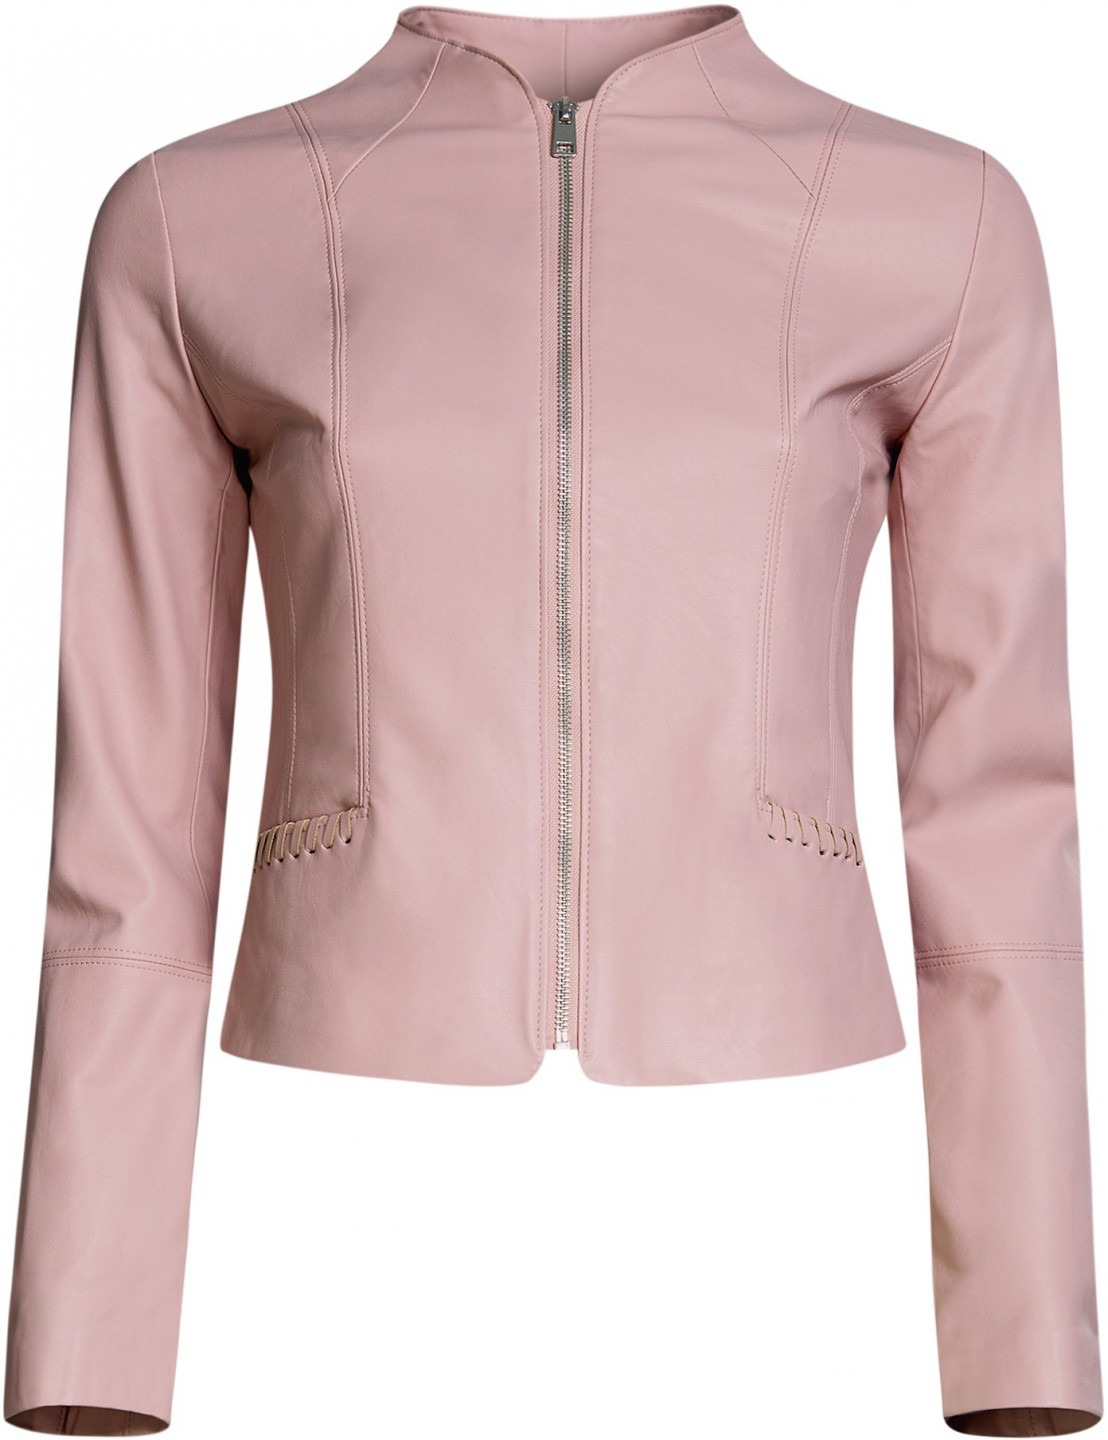 huge discount 4cf94 01846 oodji Ultra Donna Giacca in Ecopelle con Zip, Rosa, IT 38 ...